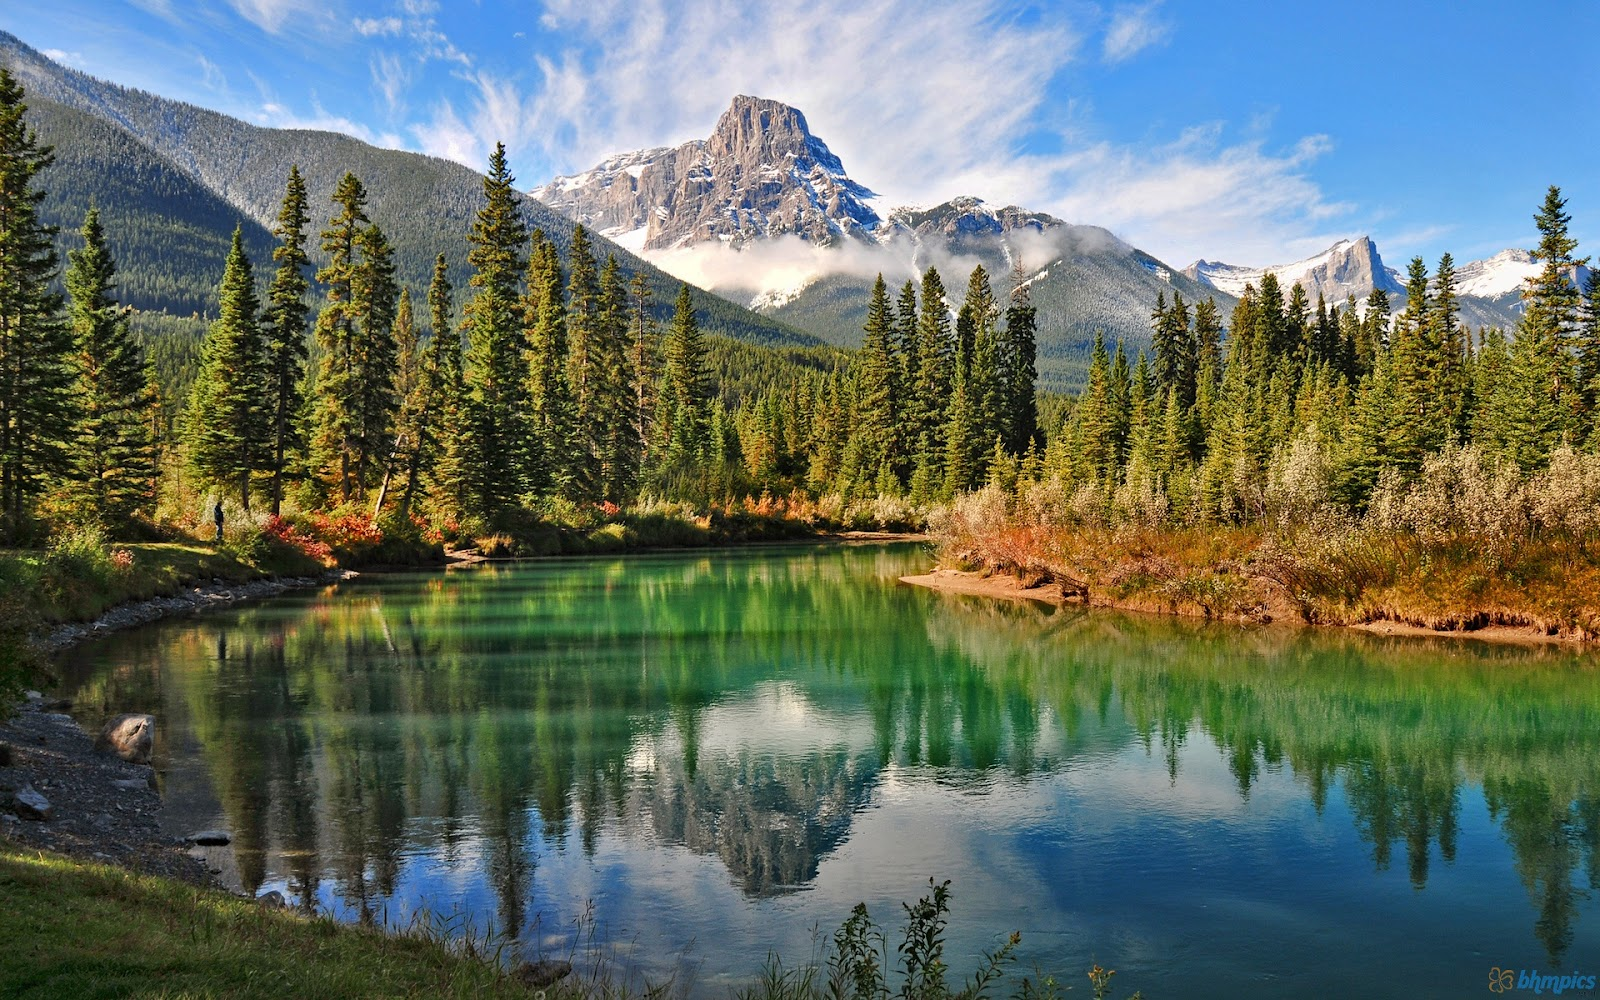 canmore_rocky_mountains-1920x1200.jpg